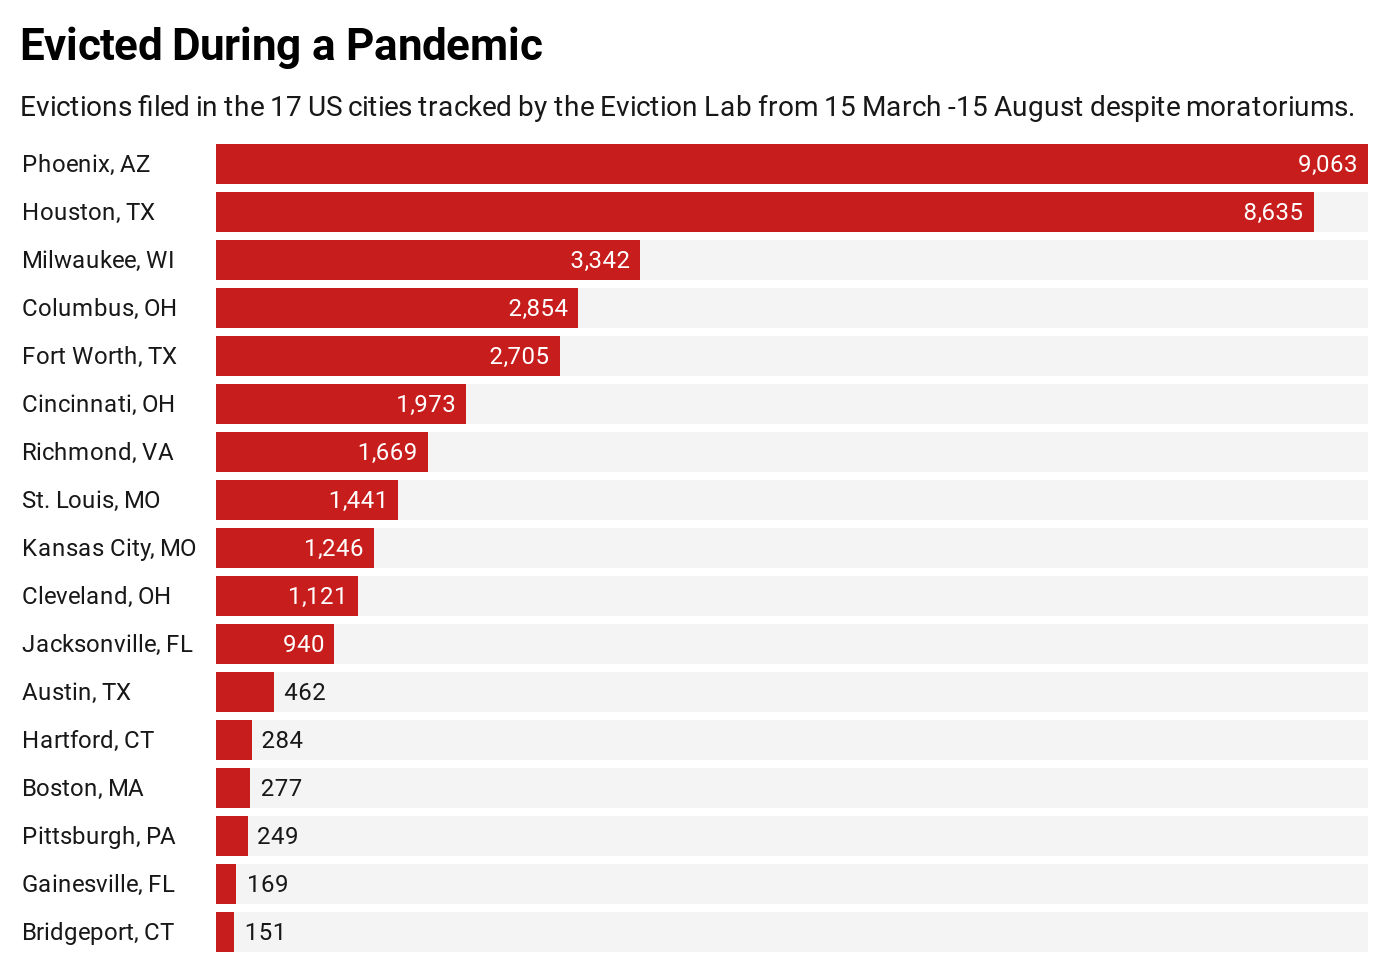 Evictions during the COVID-19 pandemic